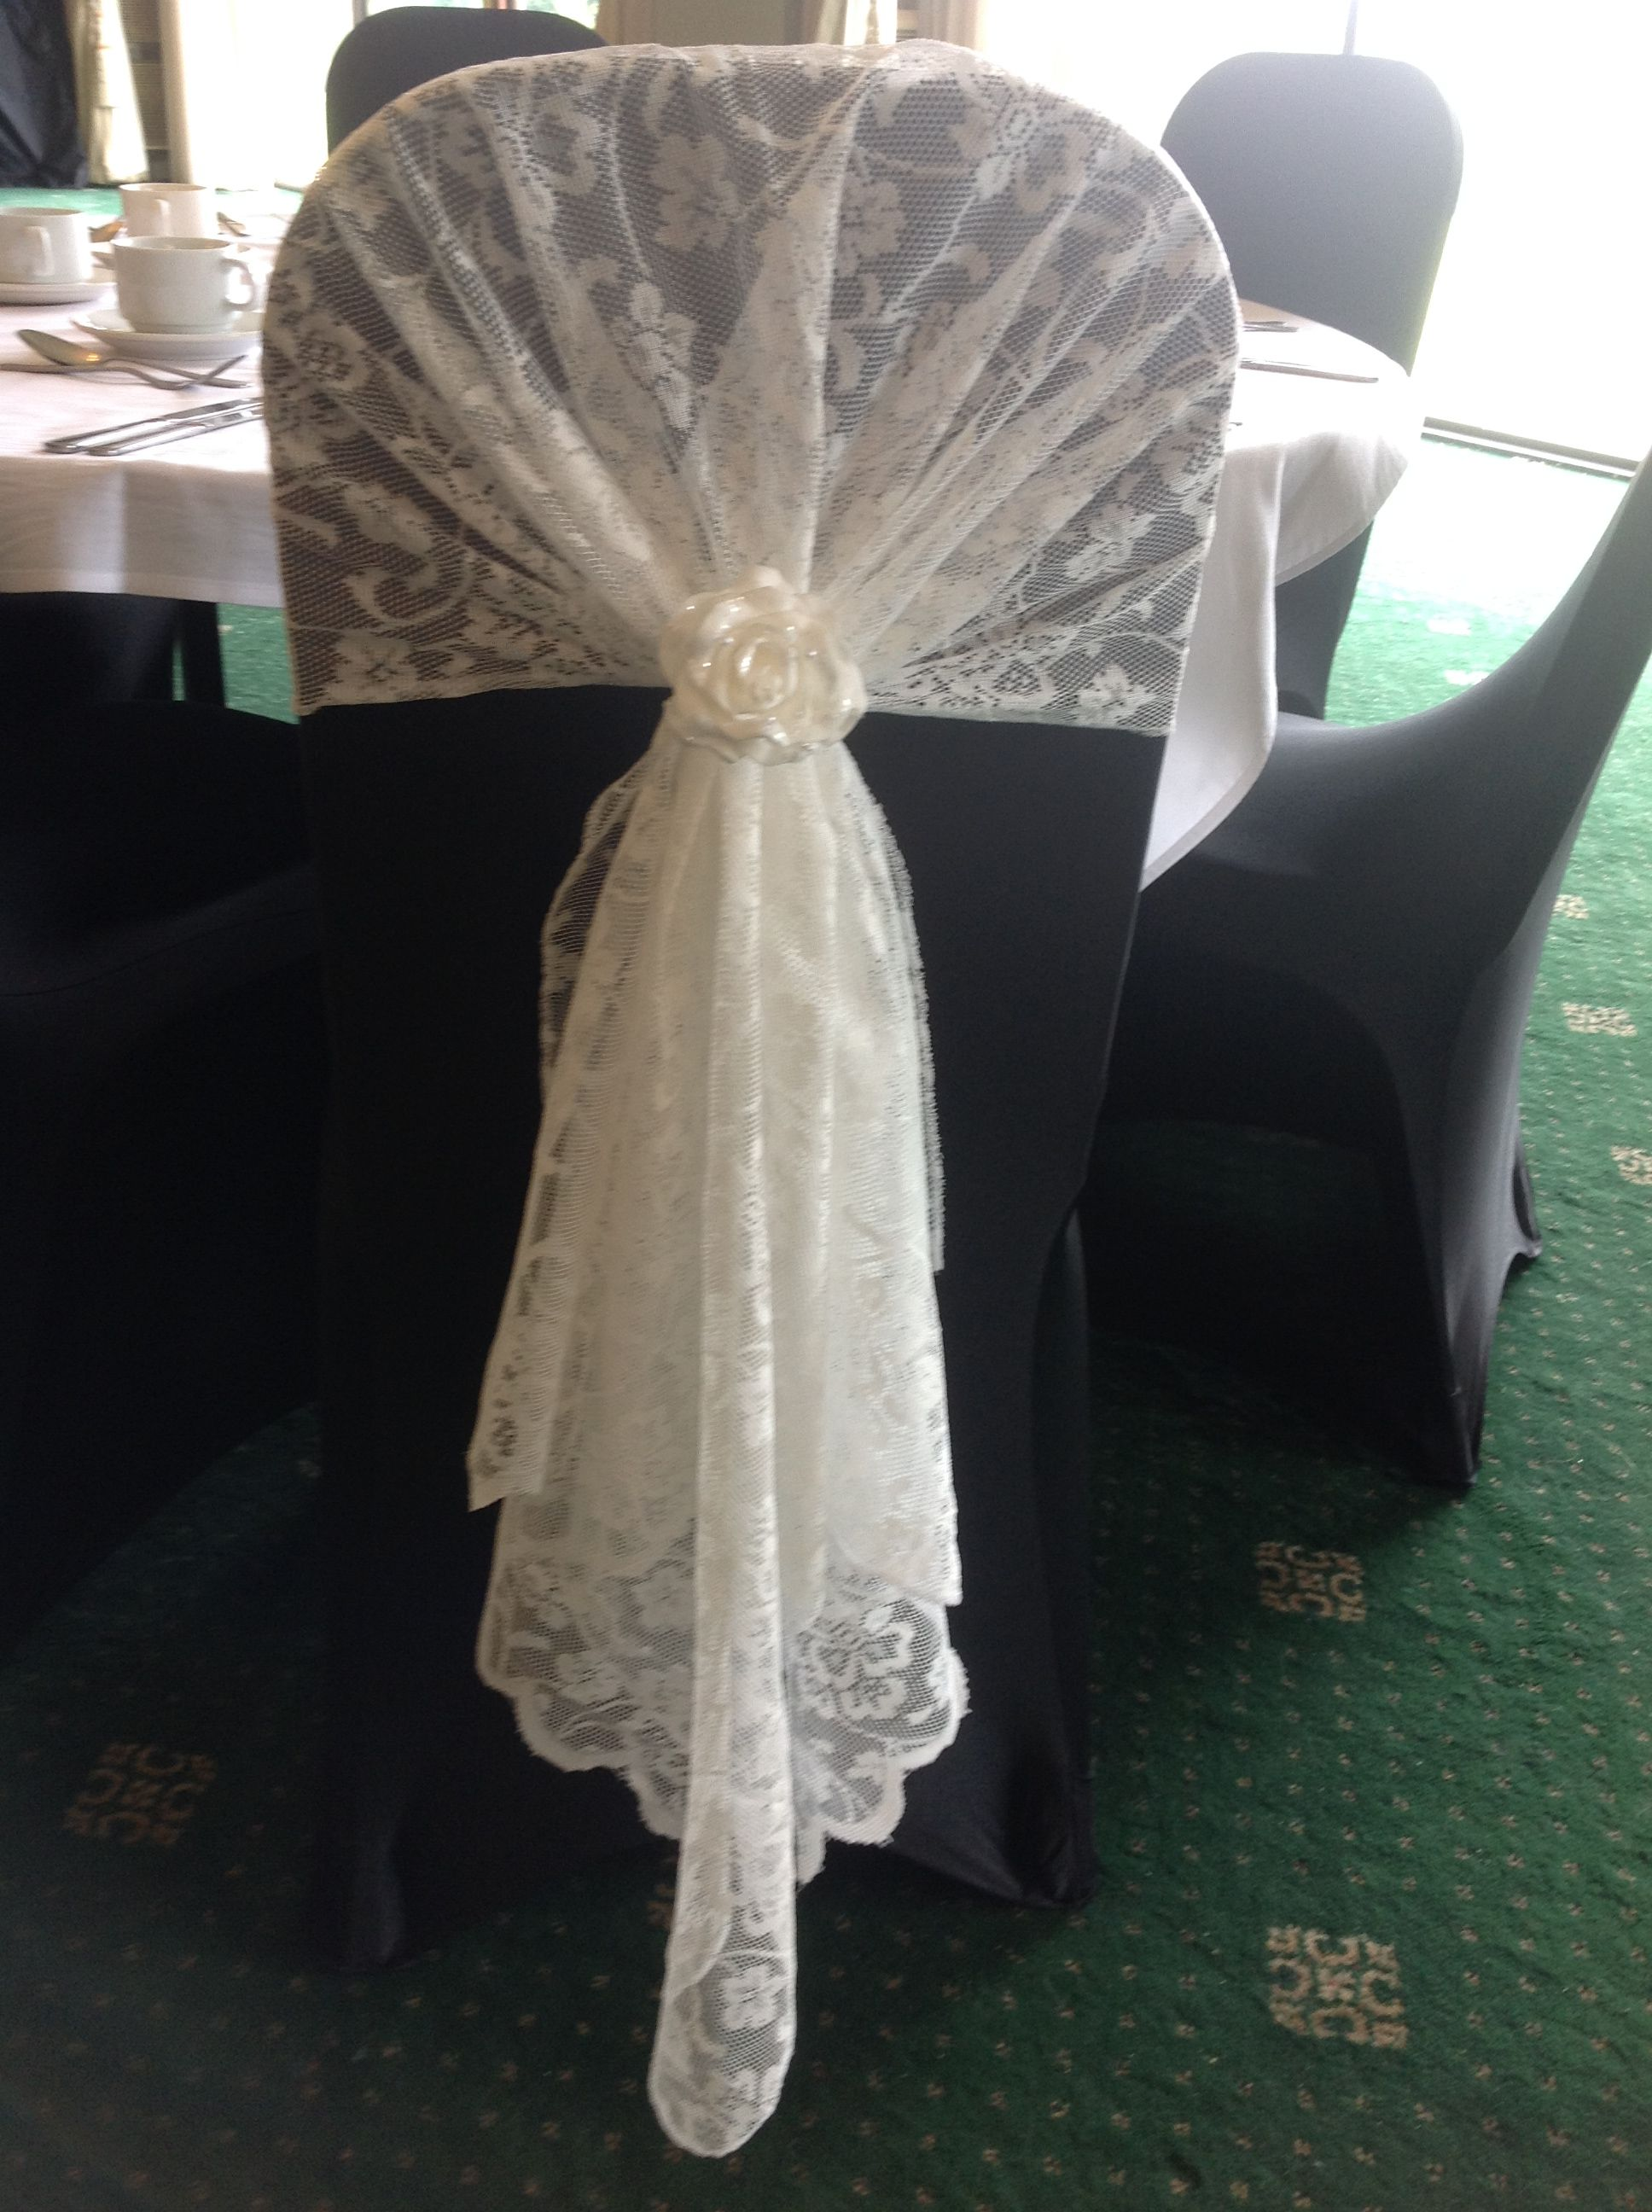 wedding chair covers tamworth fishing backpack gorgeous vintage lace hood with rose detail shows up beautifully on our black available to hire from make it special events atherstone